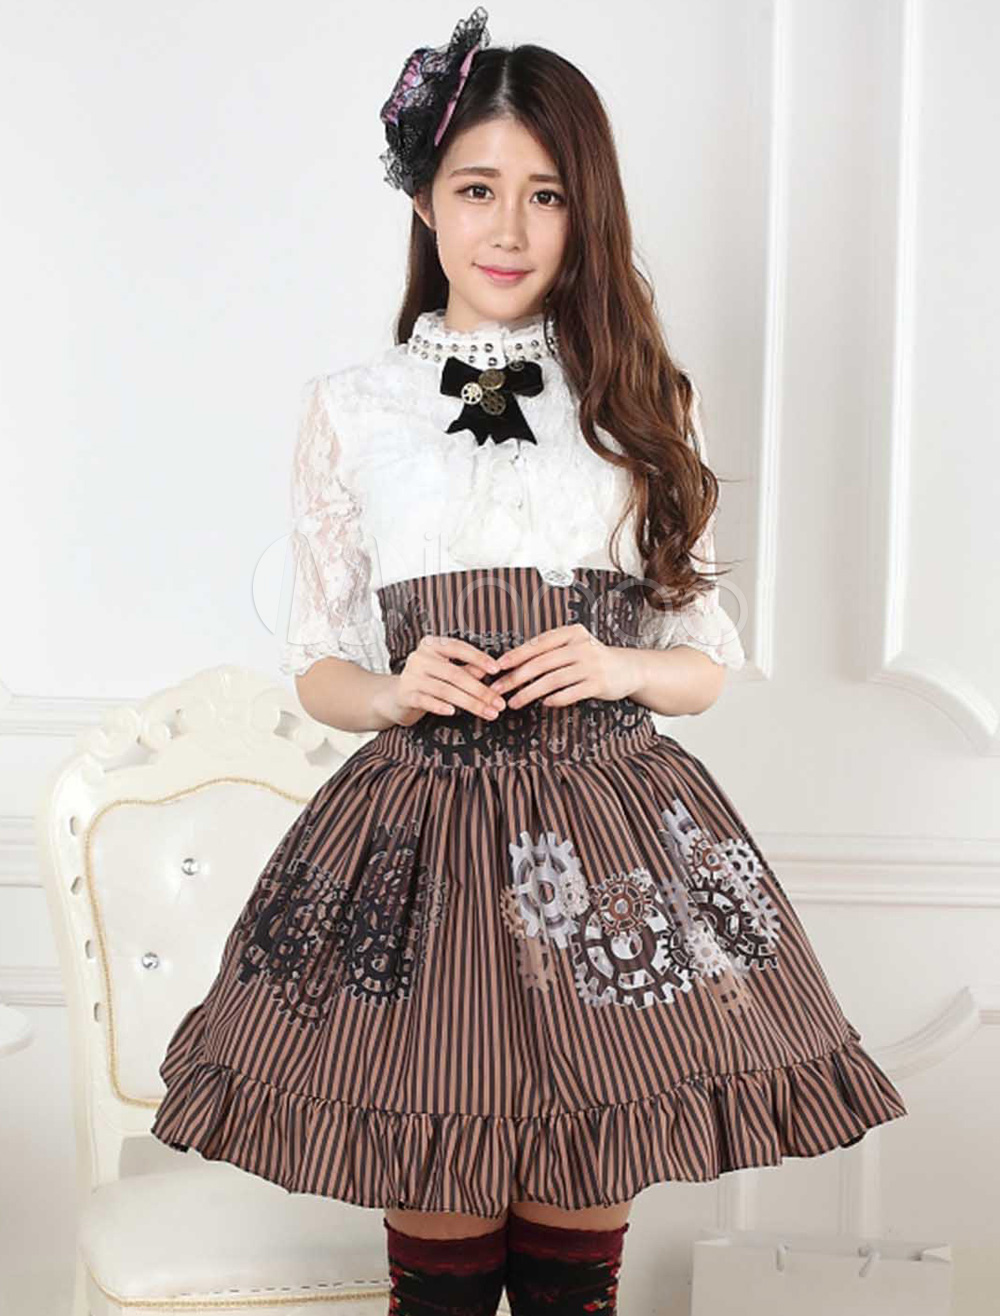 Buy Sweet Lolita Skirt Black And White Gear Steampunk SK Lolita Skirt for $34.19 in Milanoo store